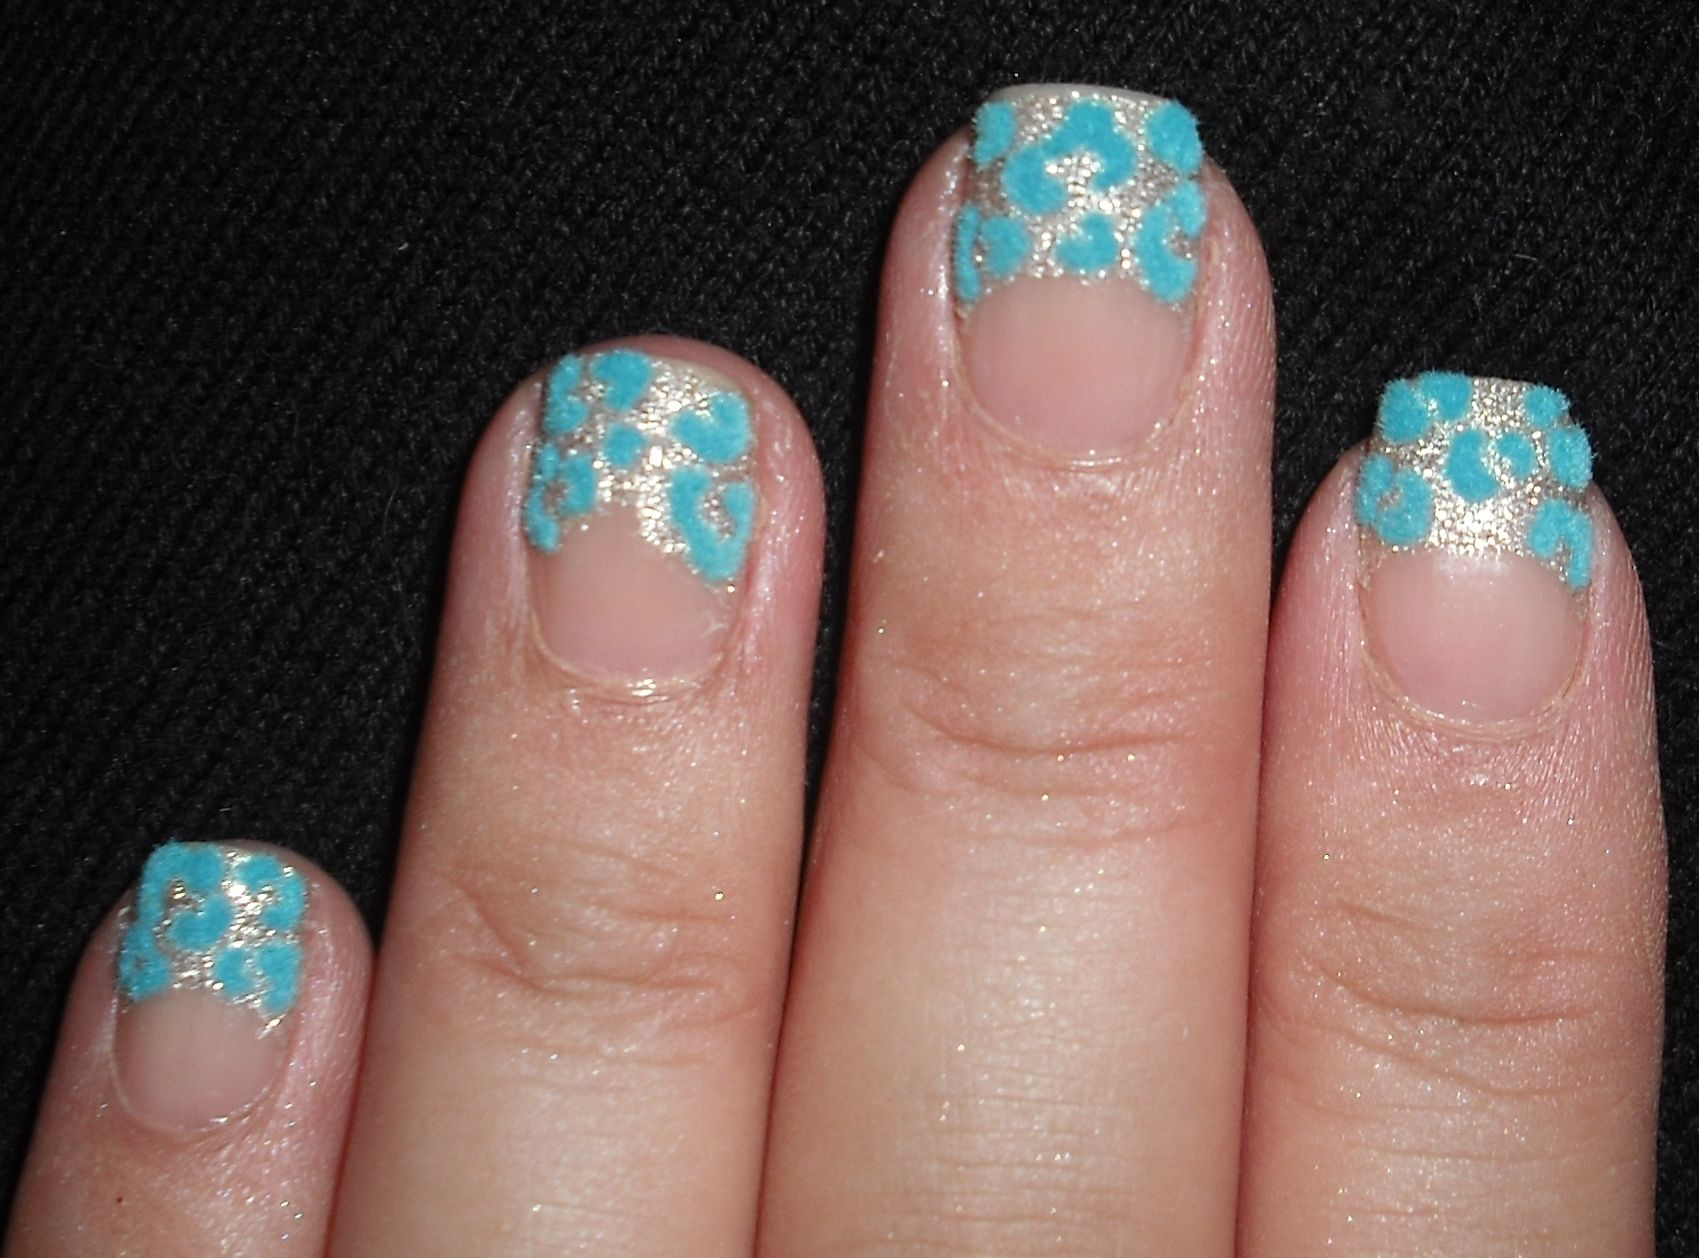 Furry Nails | fashion and beauty// | Pinterest | Furry nails and Nails